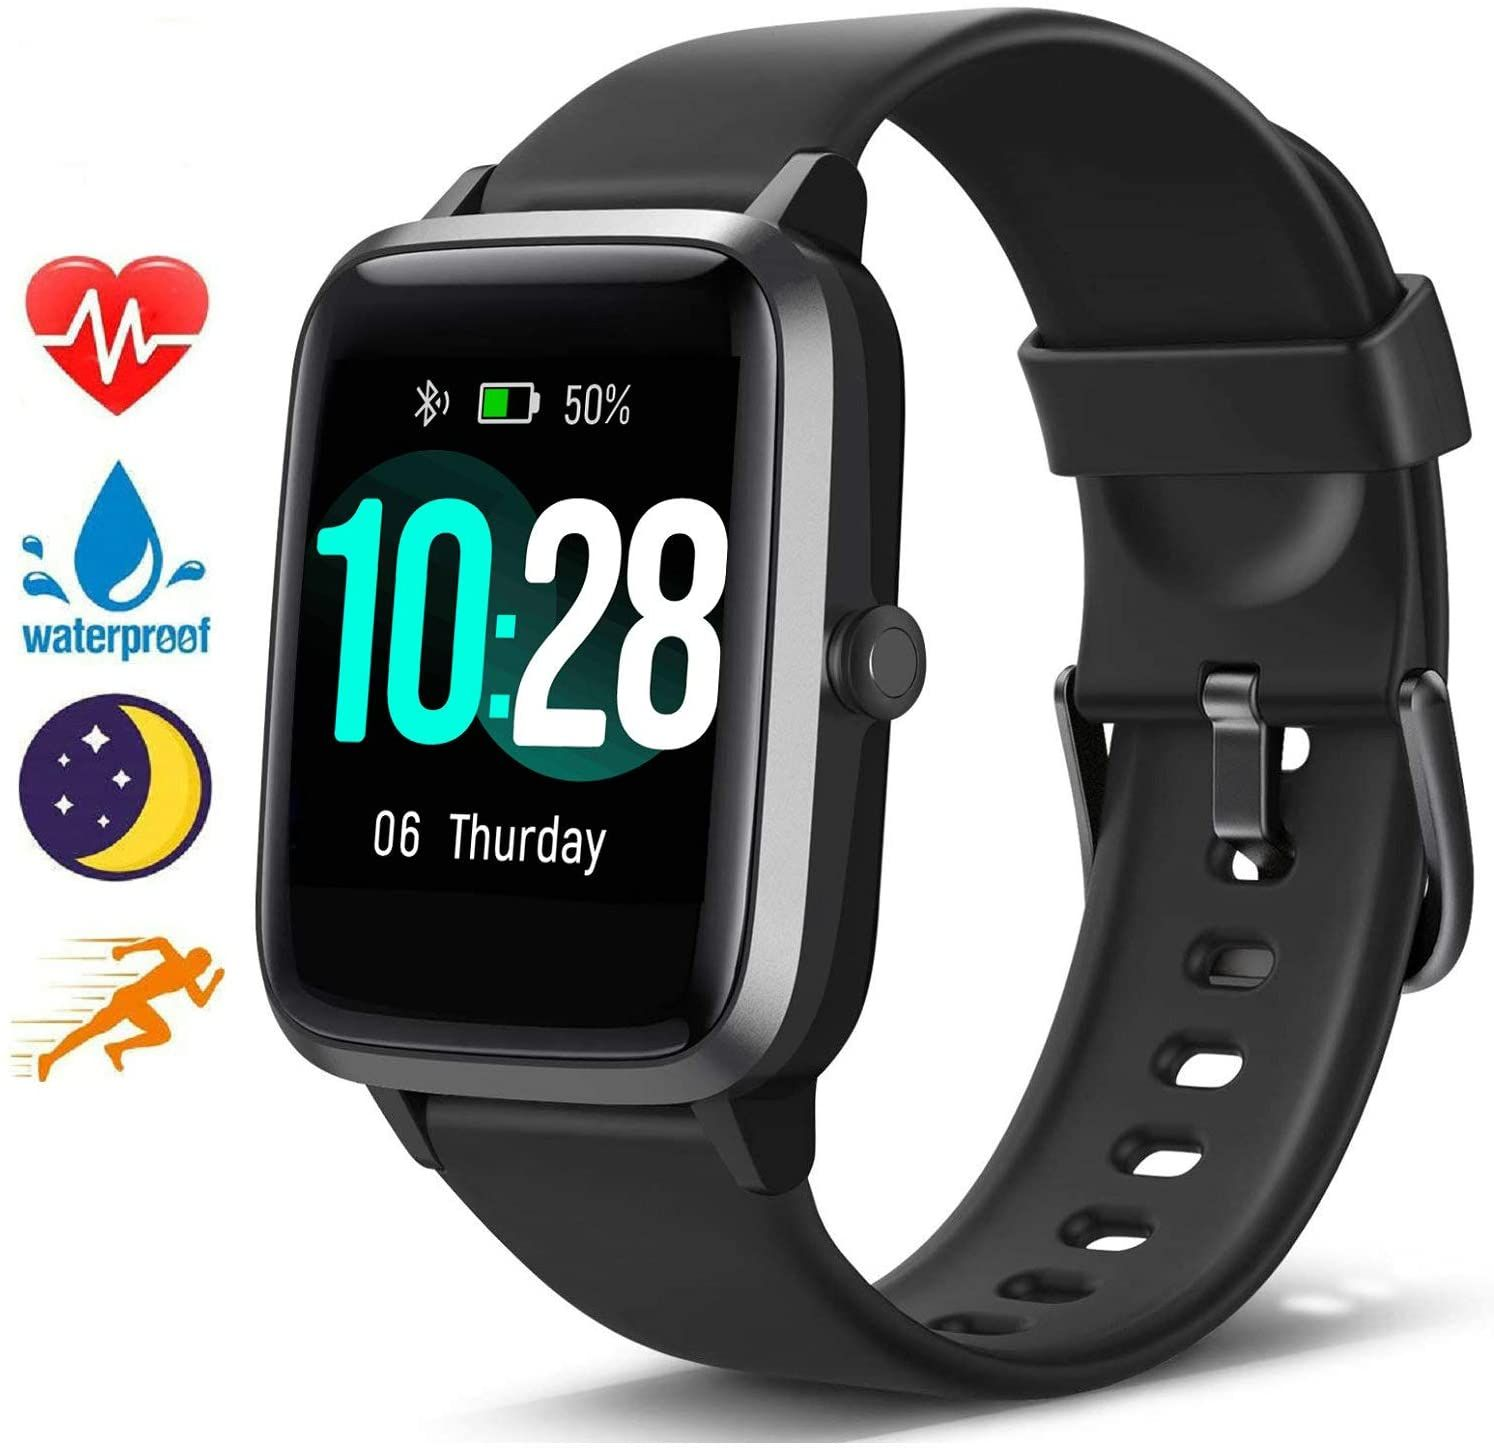 images?q=tbn:ANd9GcQh_l3eQ5xwiPy07kGEXjmjgmBKBRB7H2mRxCGhv1tFWg5c_mWT Smart Watch Size Guide